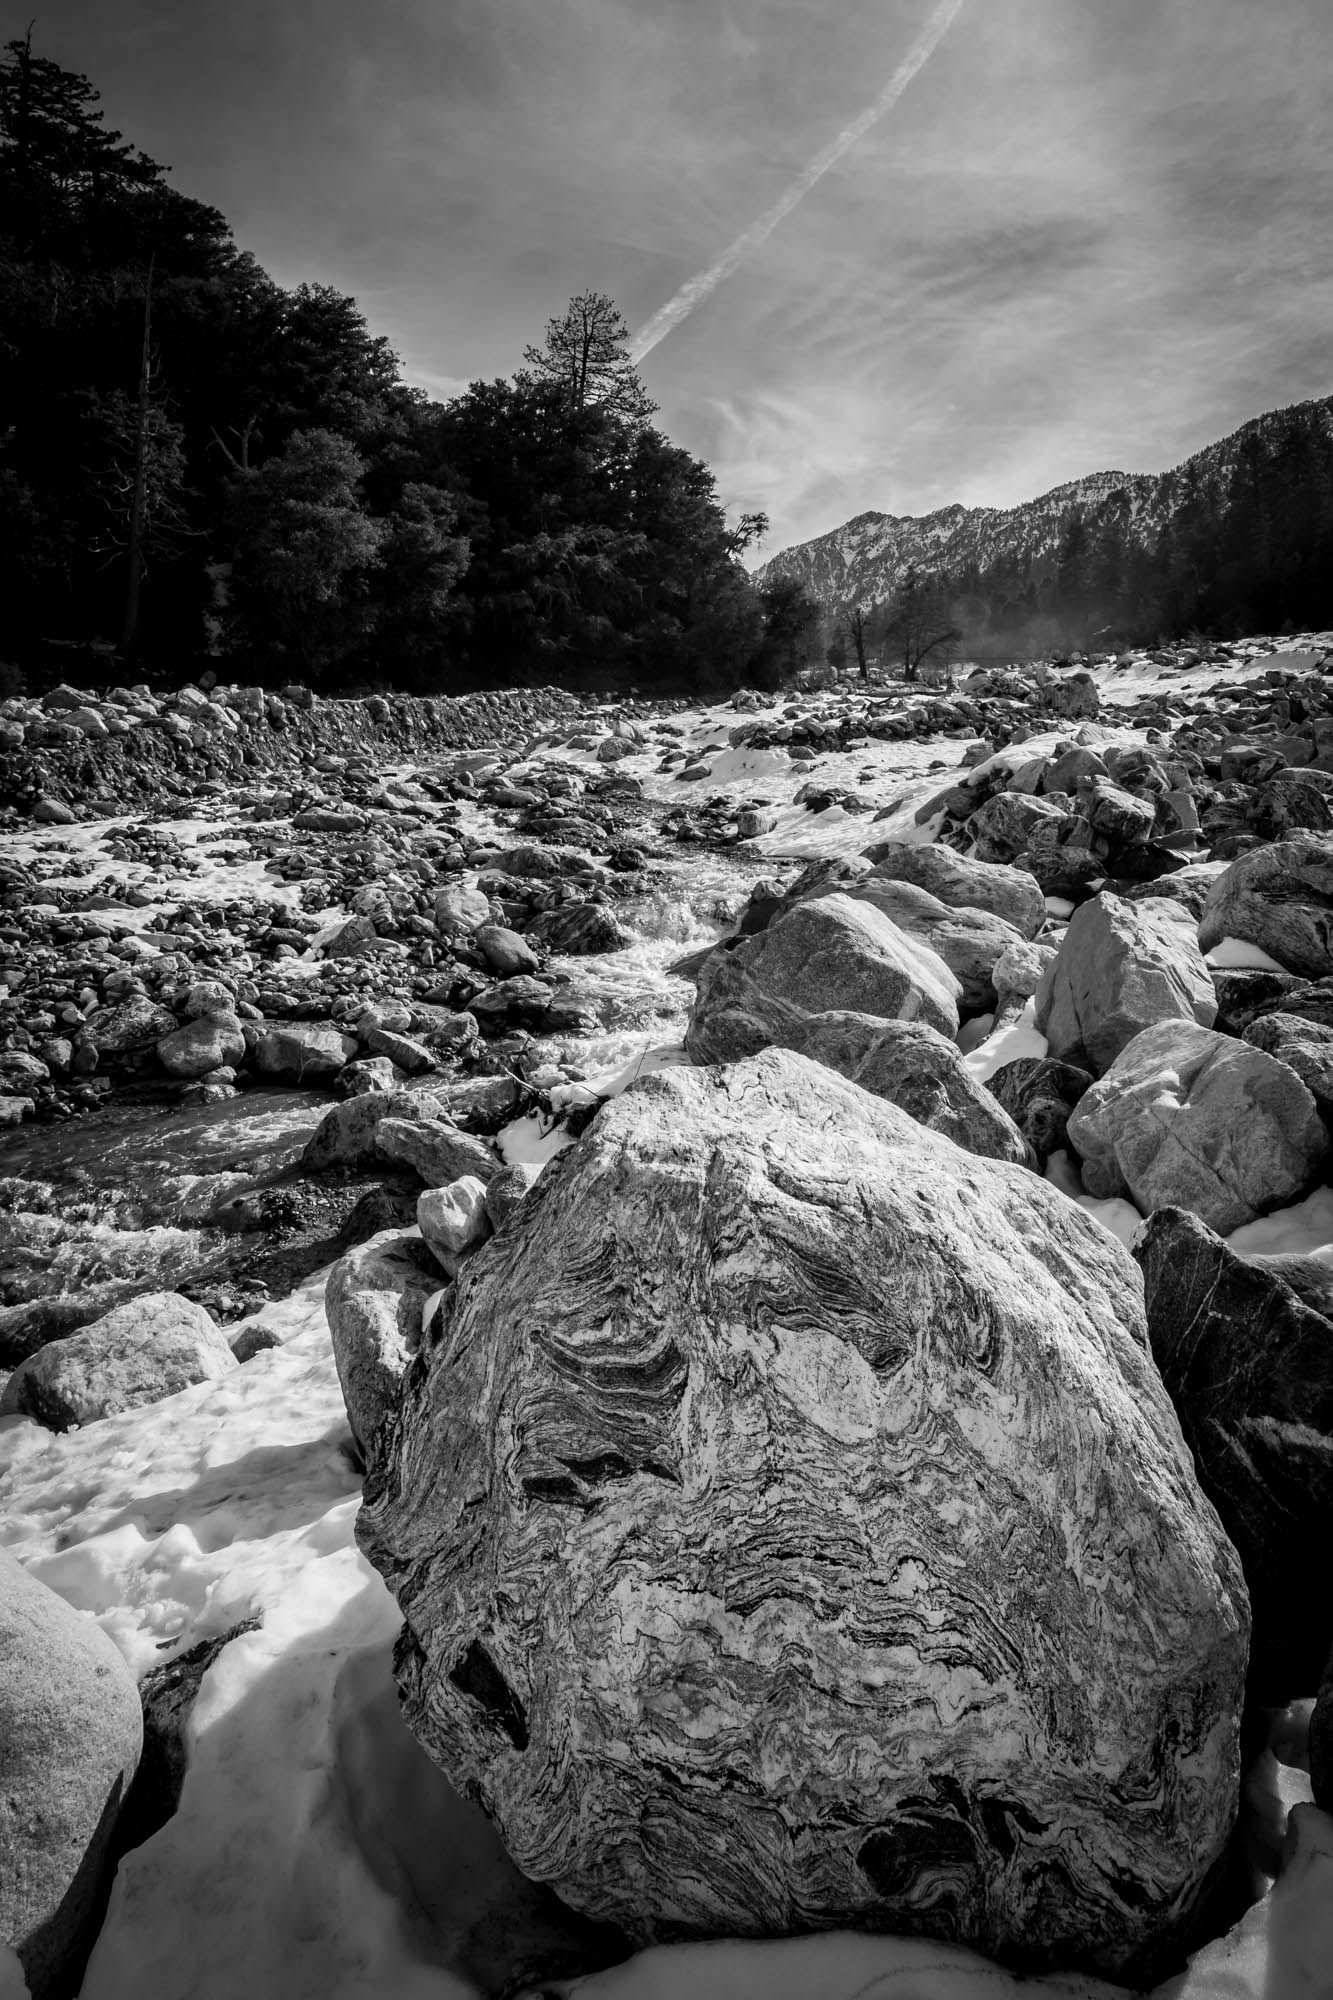 Landscape Rock Yucaipa : Rocks water stream sky trees river landscape photography clouds